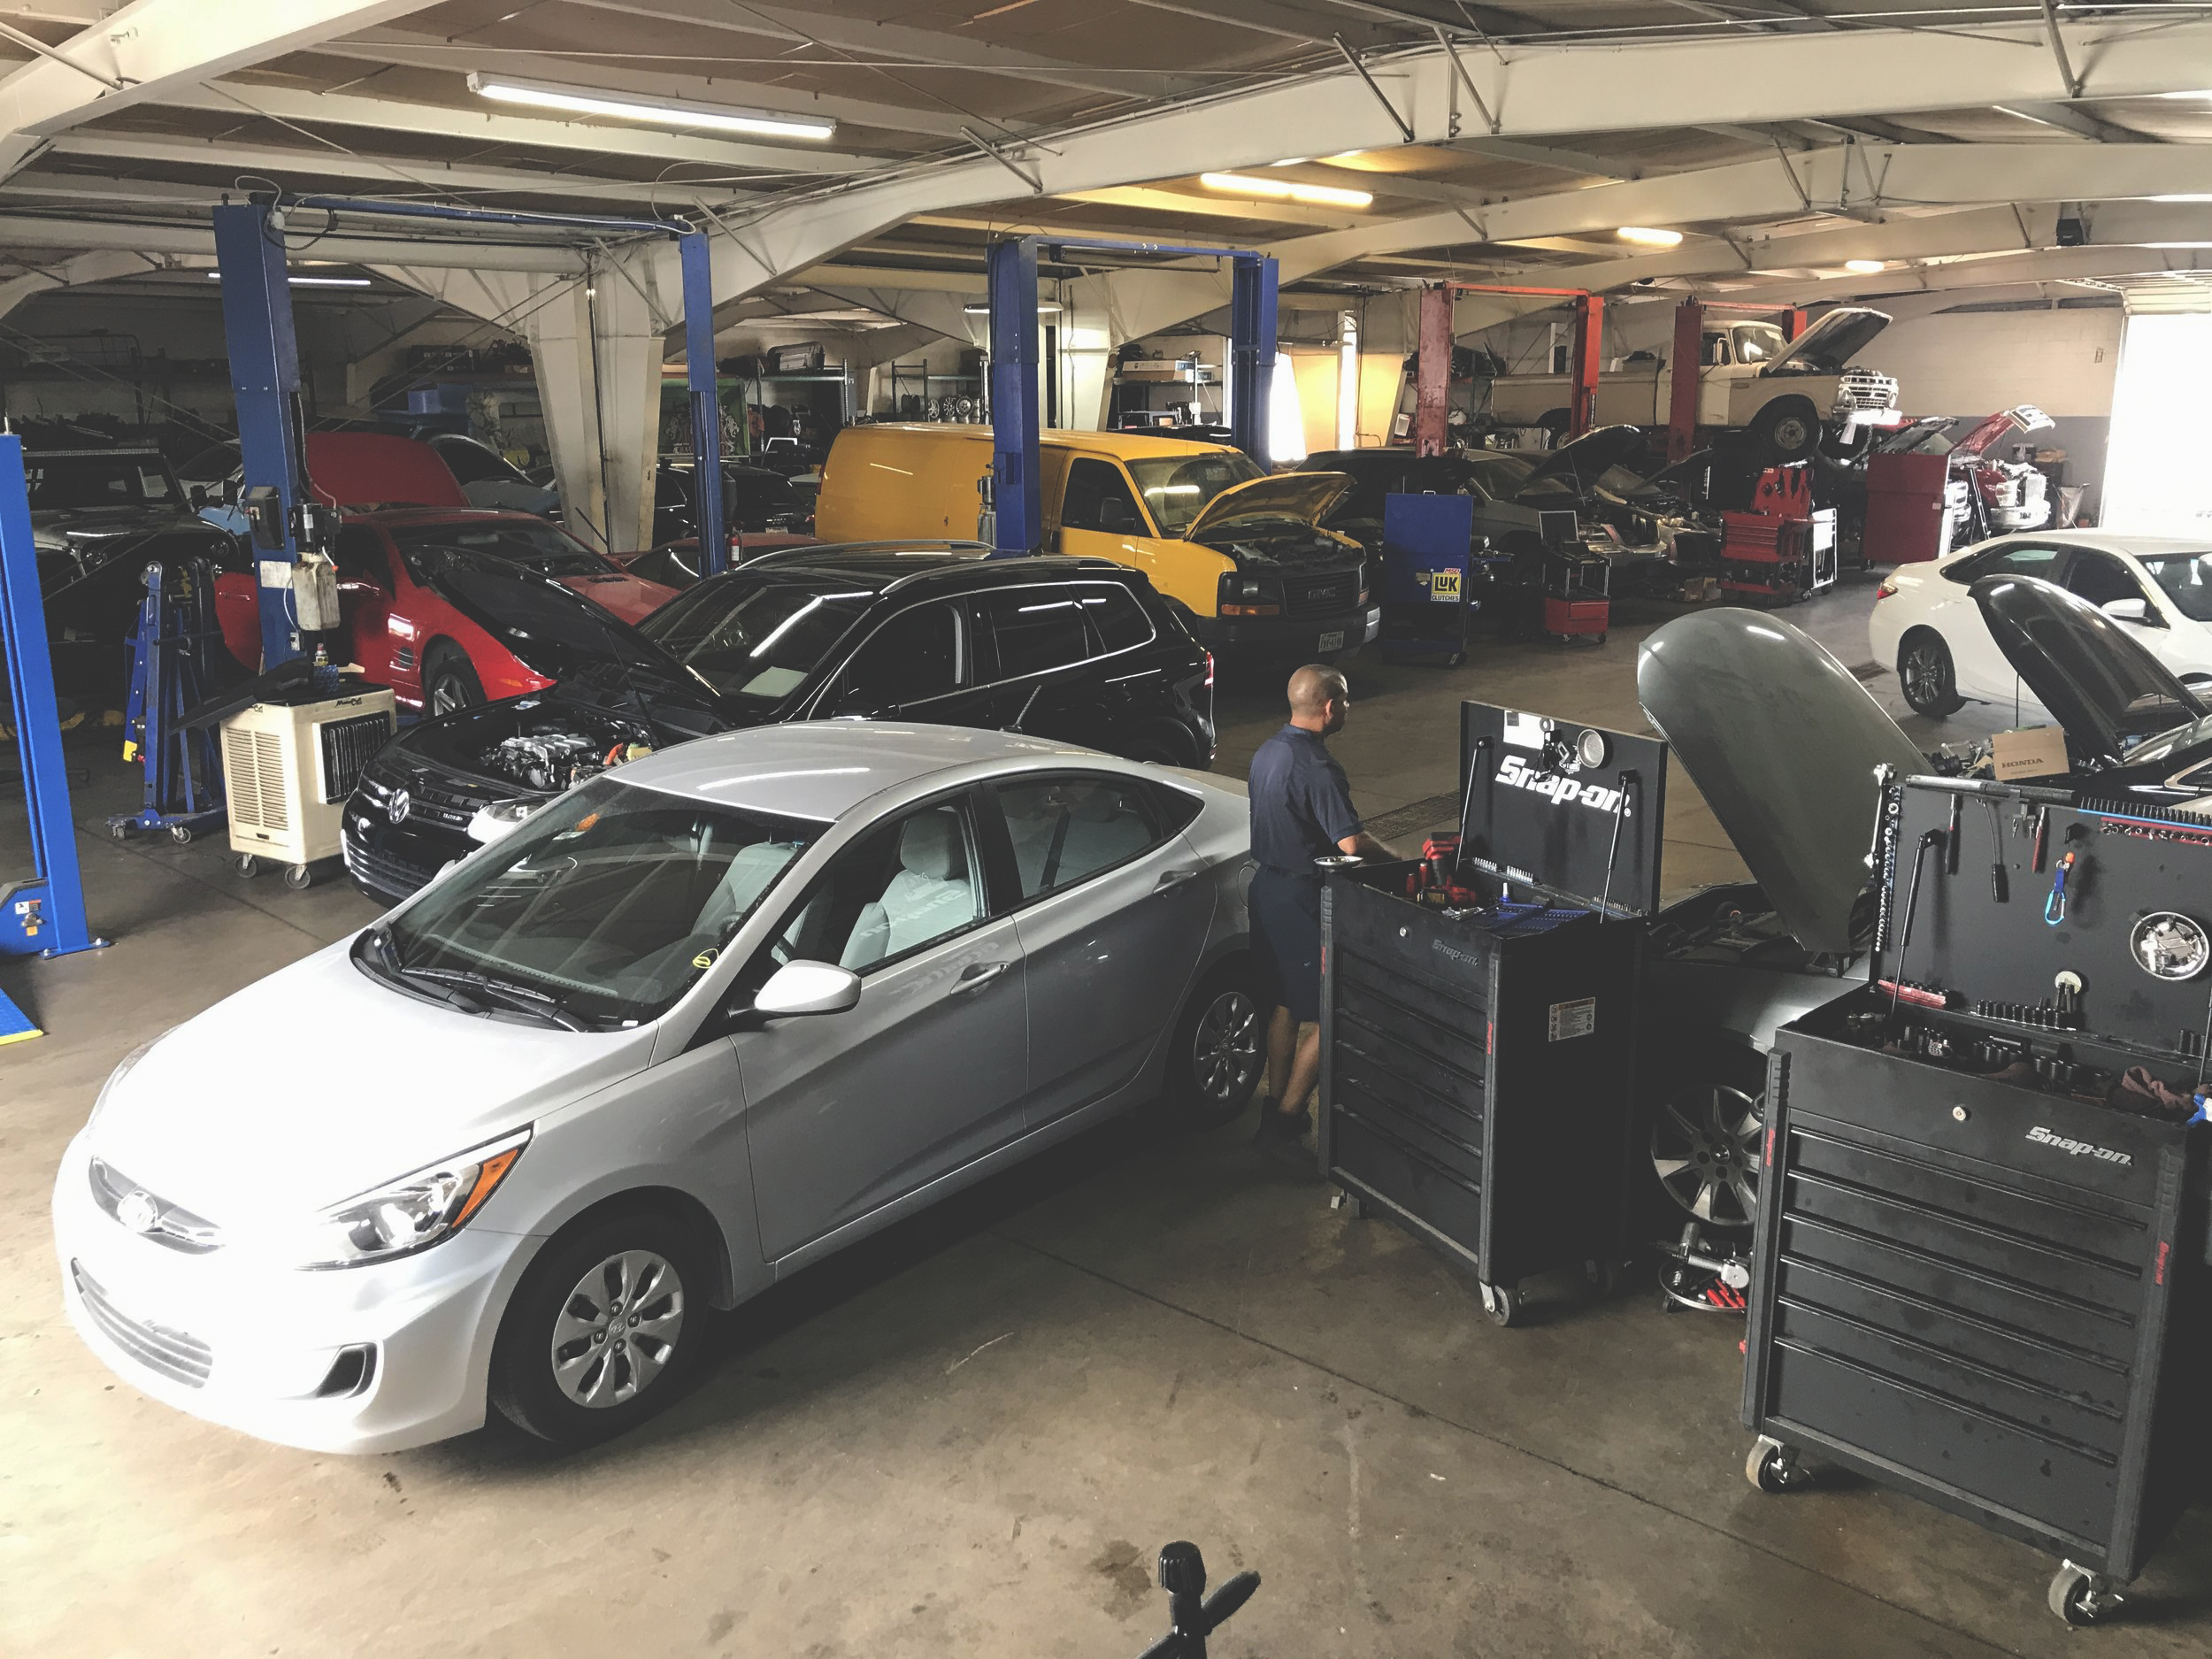 our services - Your vehicle has many systems that must work together in harmony to keep your car or truck running safely. Maintenance of those systems ensures a long and affordable lifespan for your vehicle. Keep your vehicle in great condition by making regular service appointments.